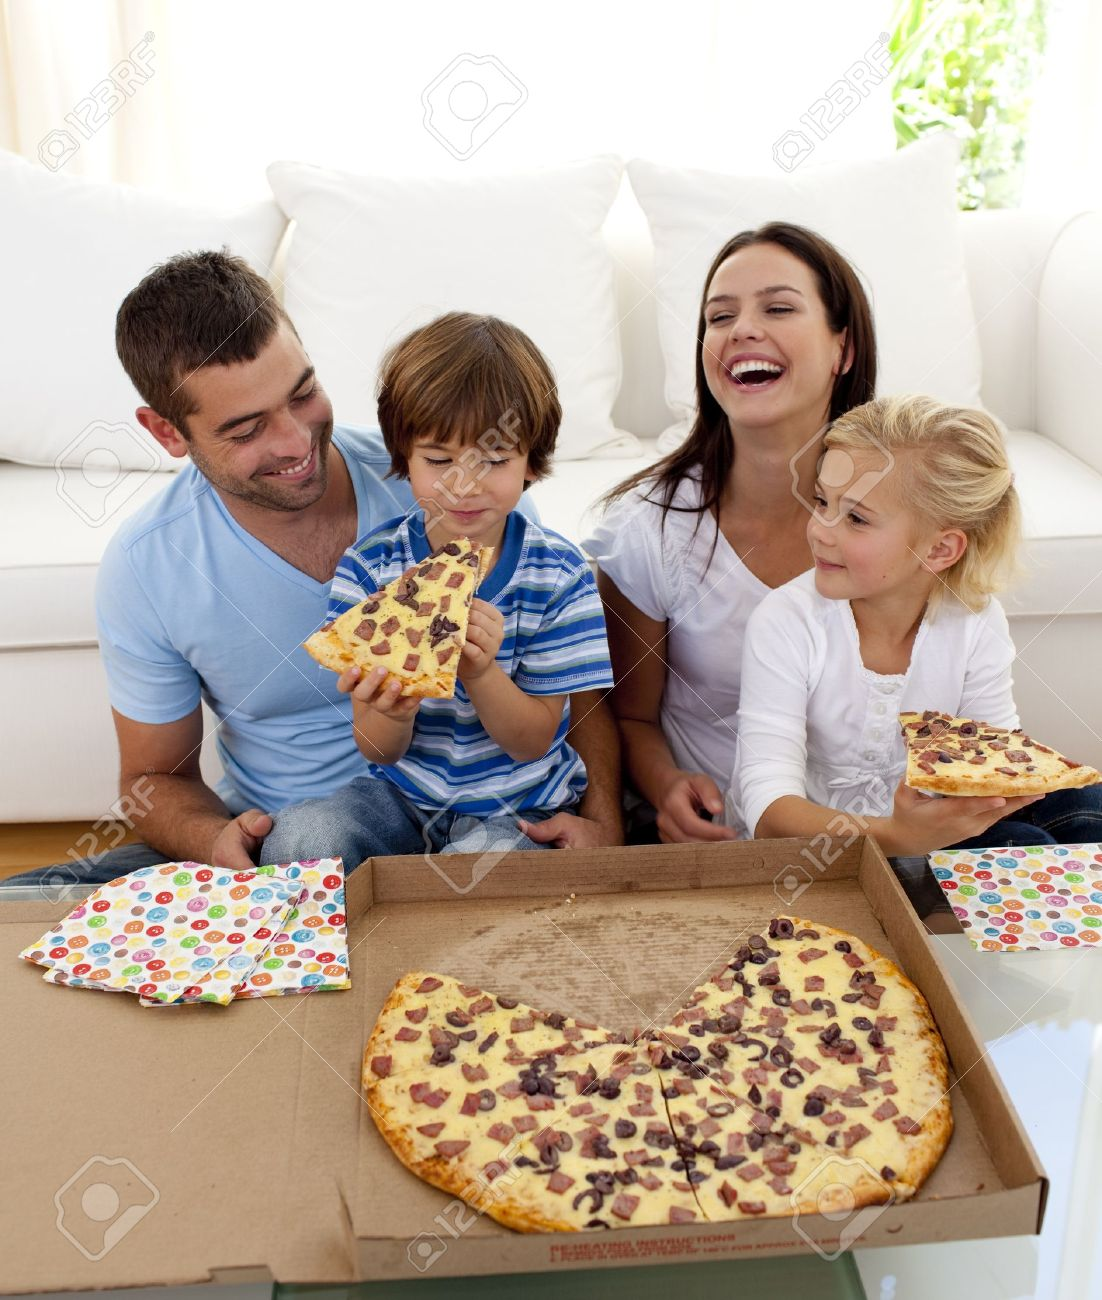 Parents and children eating pizza in living-room Stock Photo - 10249802